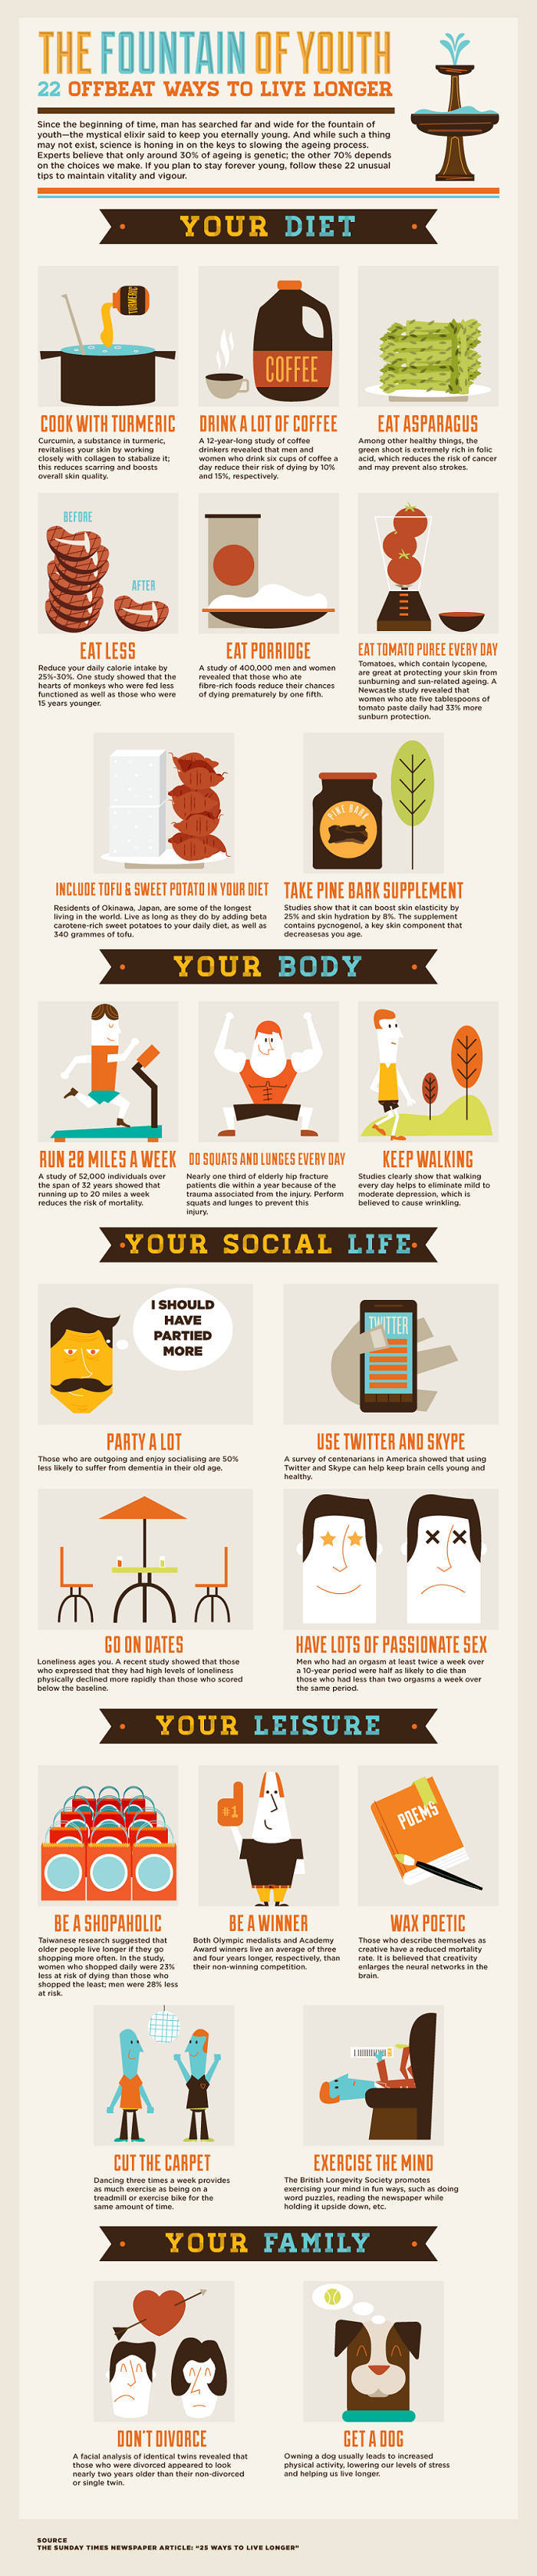 Life Hacks for a Longer Life - Infographic